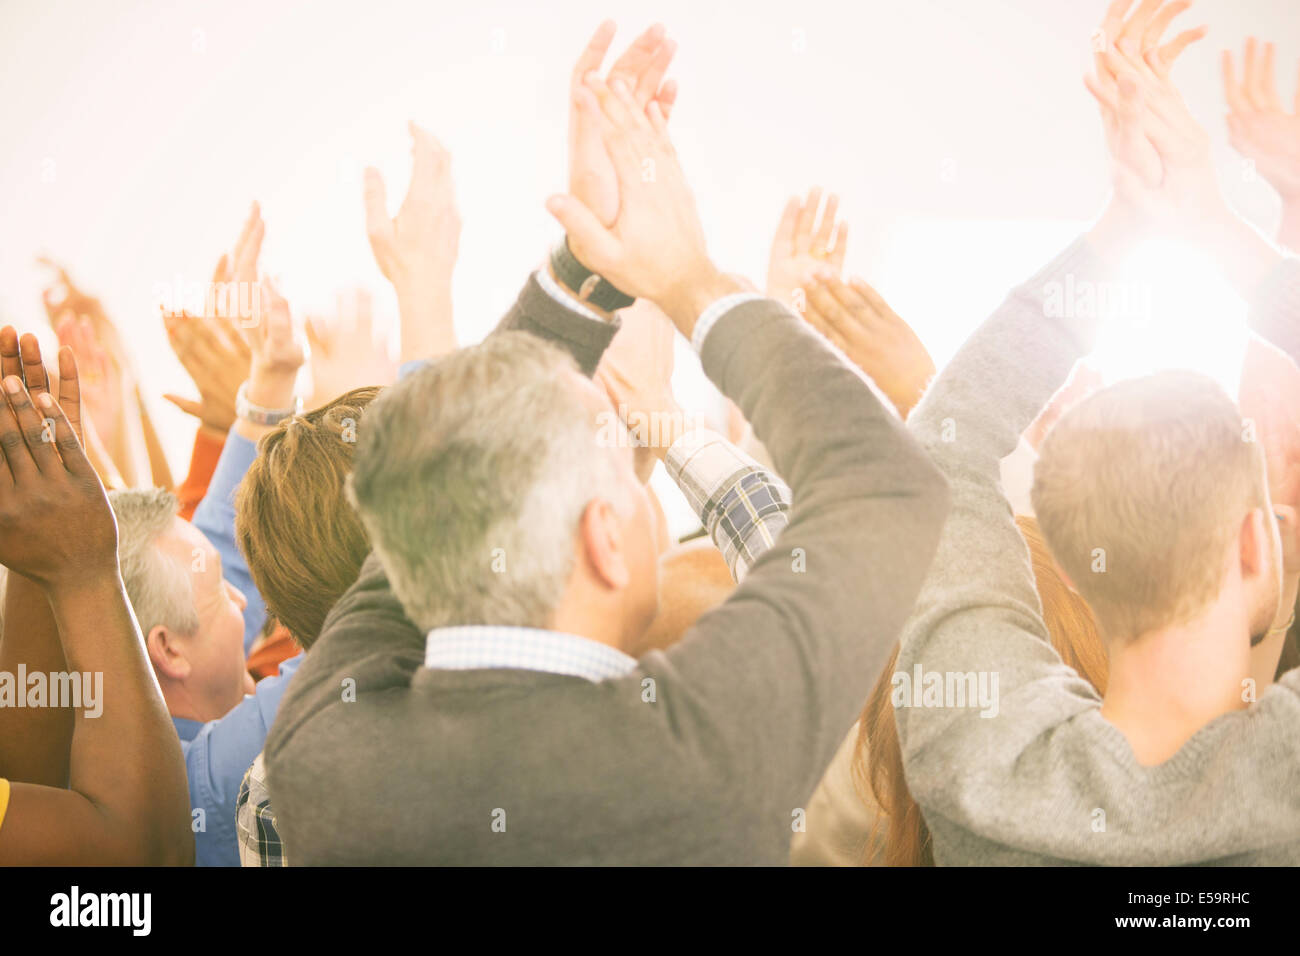 Crowd clapping - Stock Image